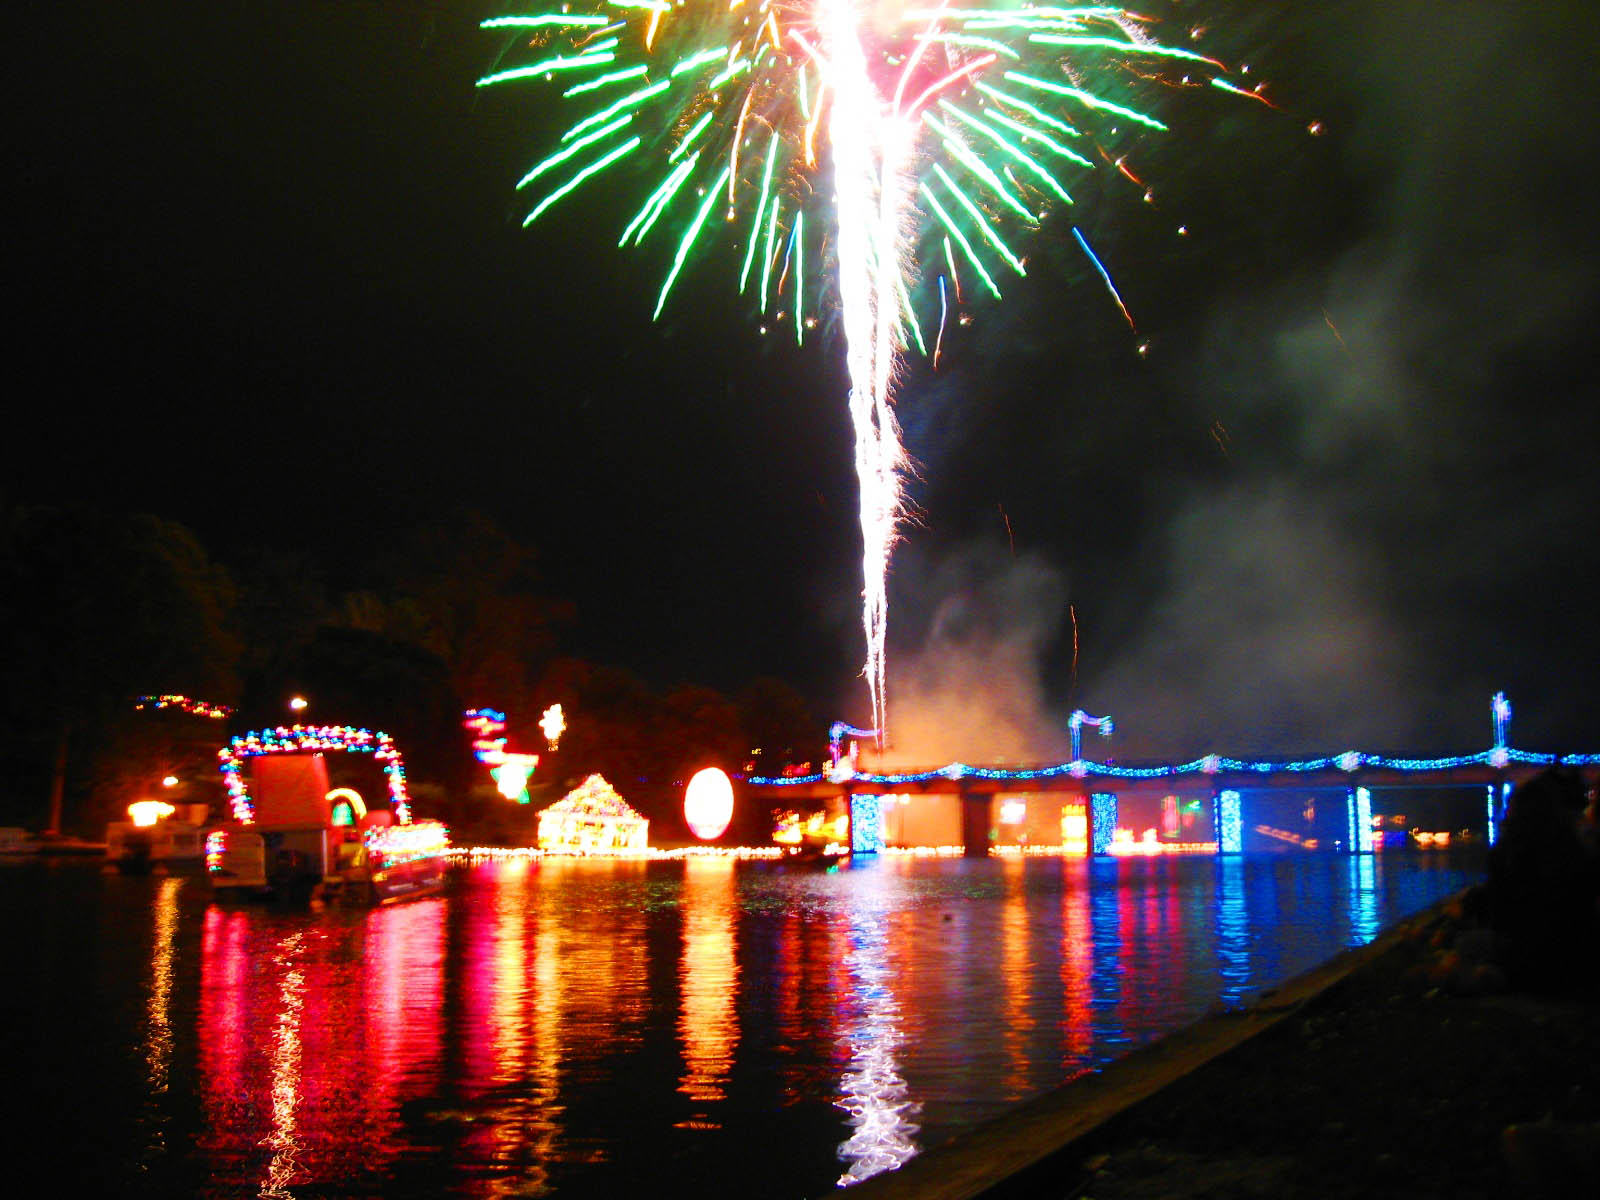 2013 Festival of Lights: Schedule of Events